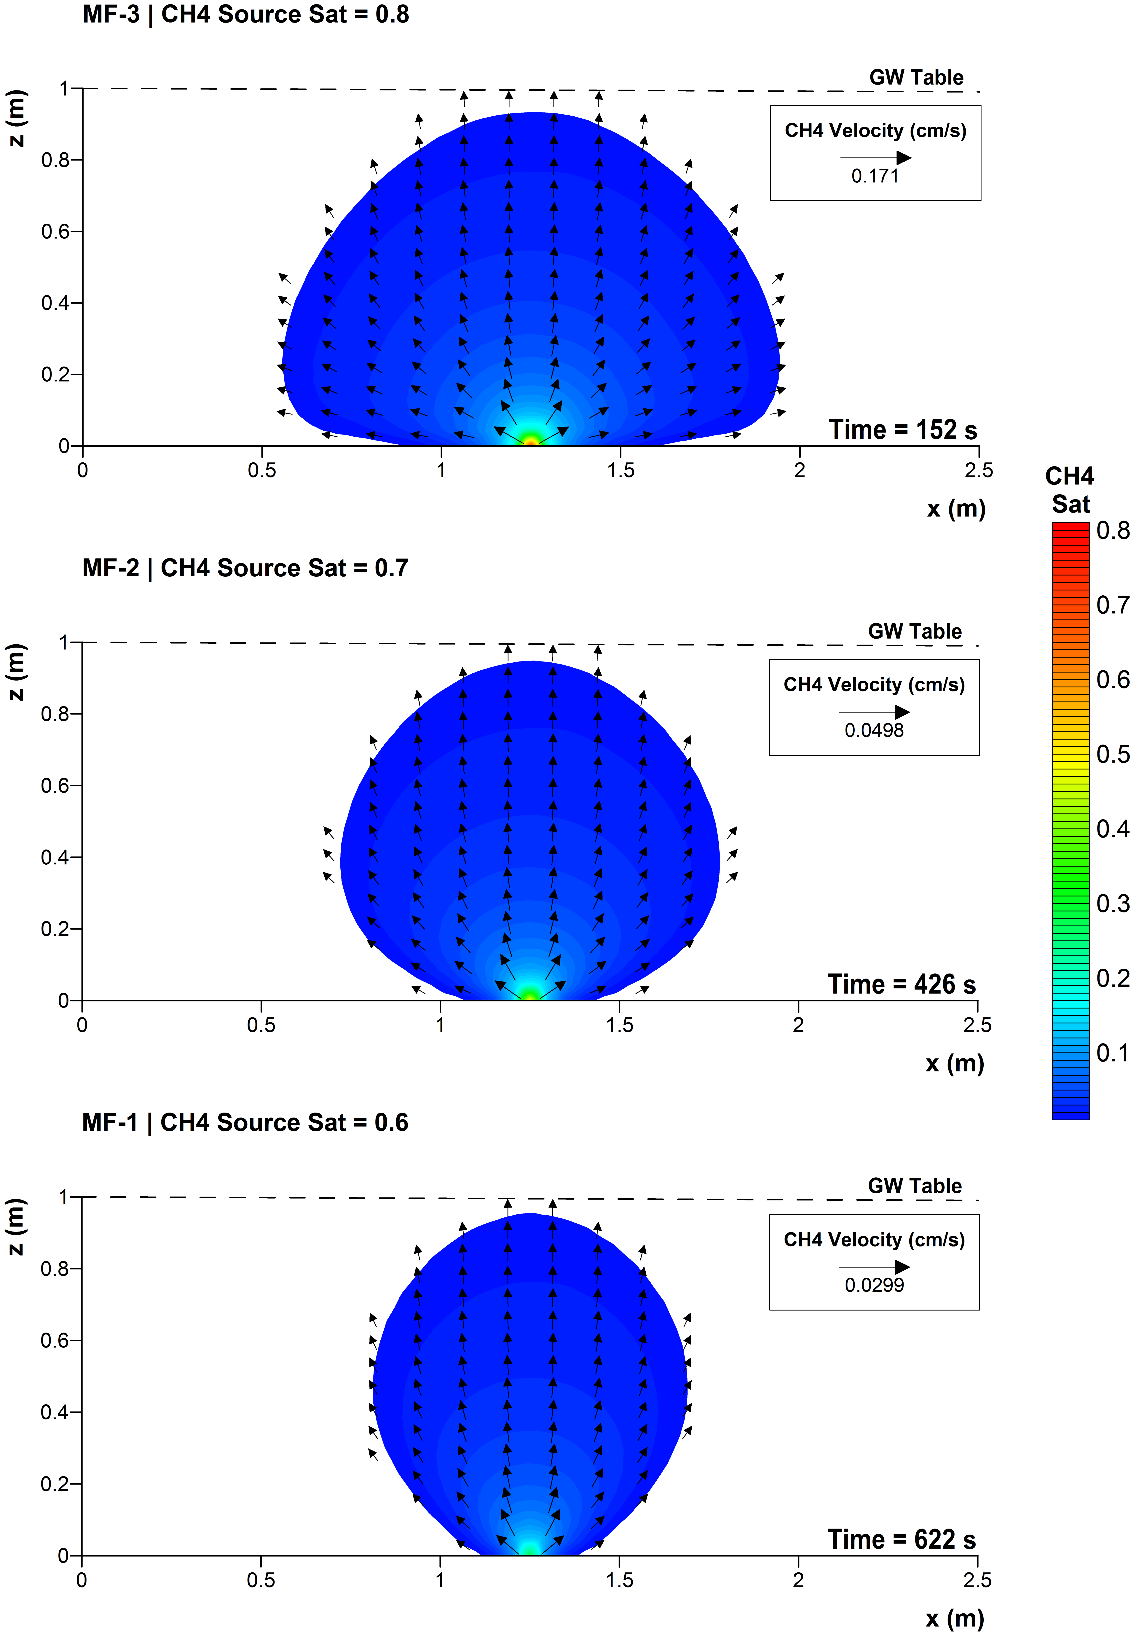 Figure 1. Predicted final gaseous methane saturation profile and velocity field for MF-1, MF-2, and MF-3. GW stands for groundwater.